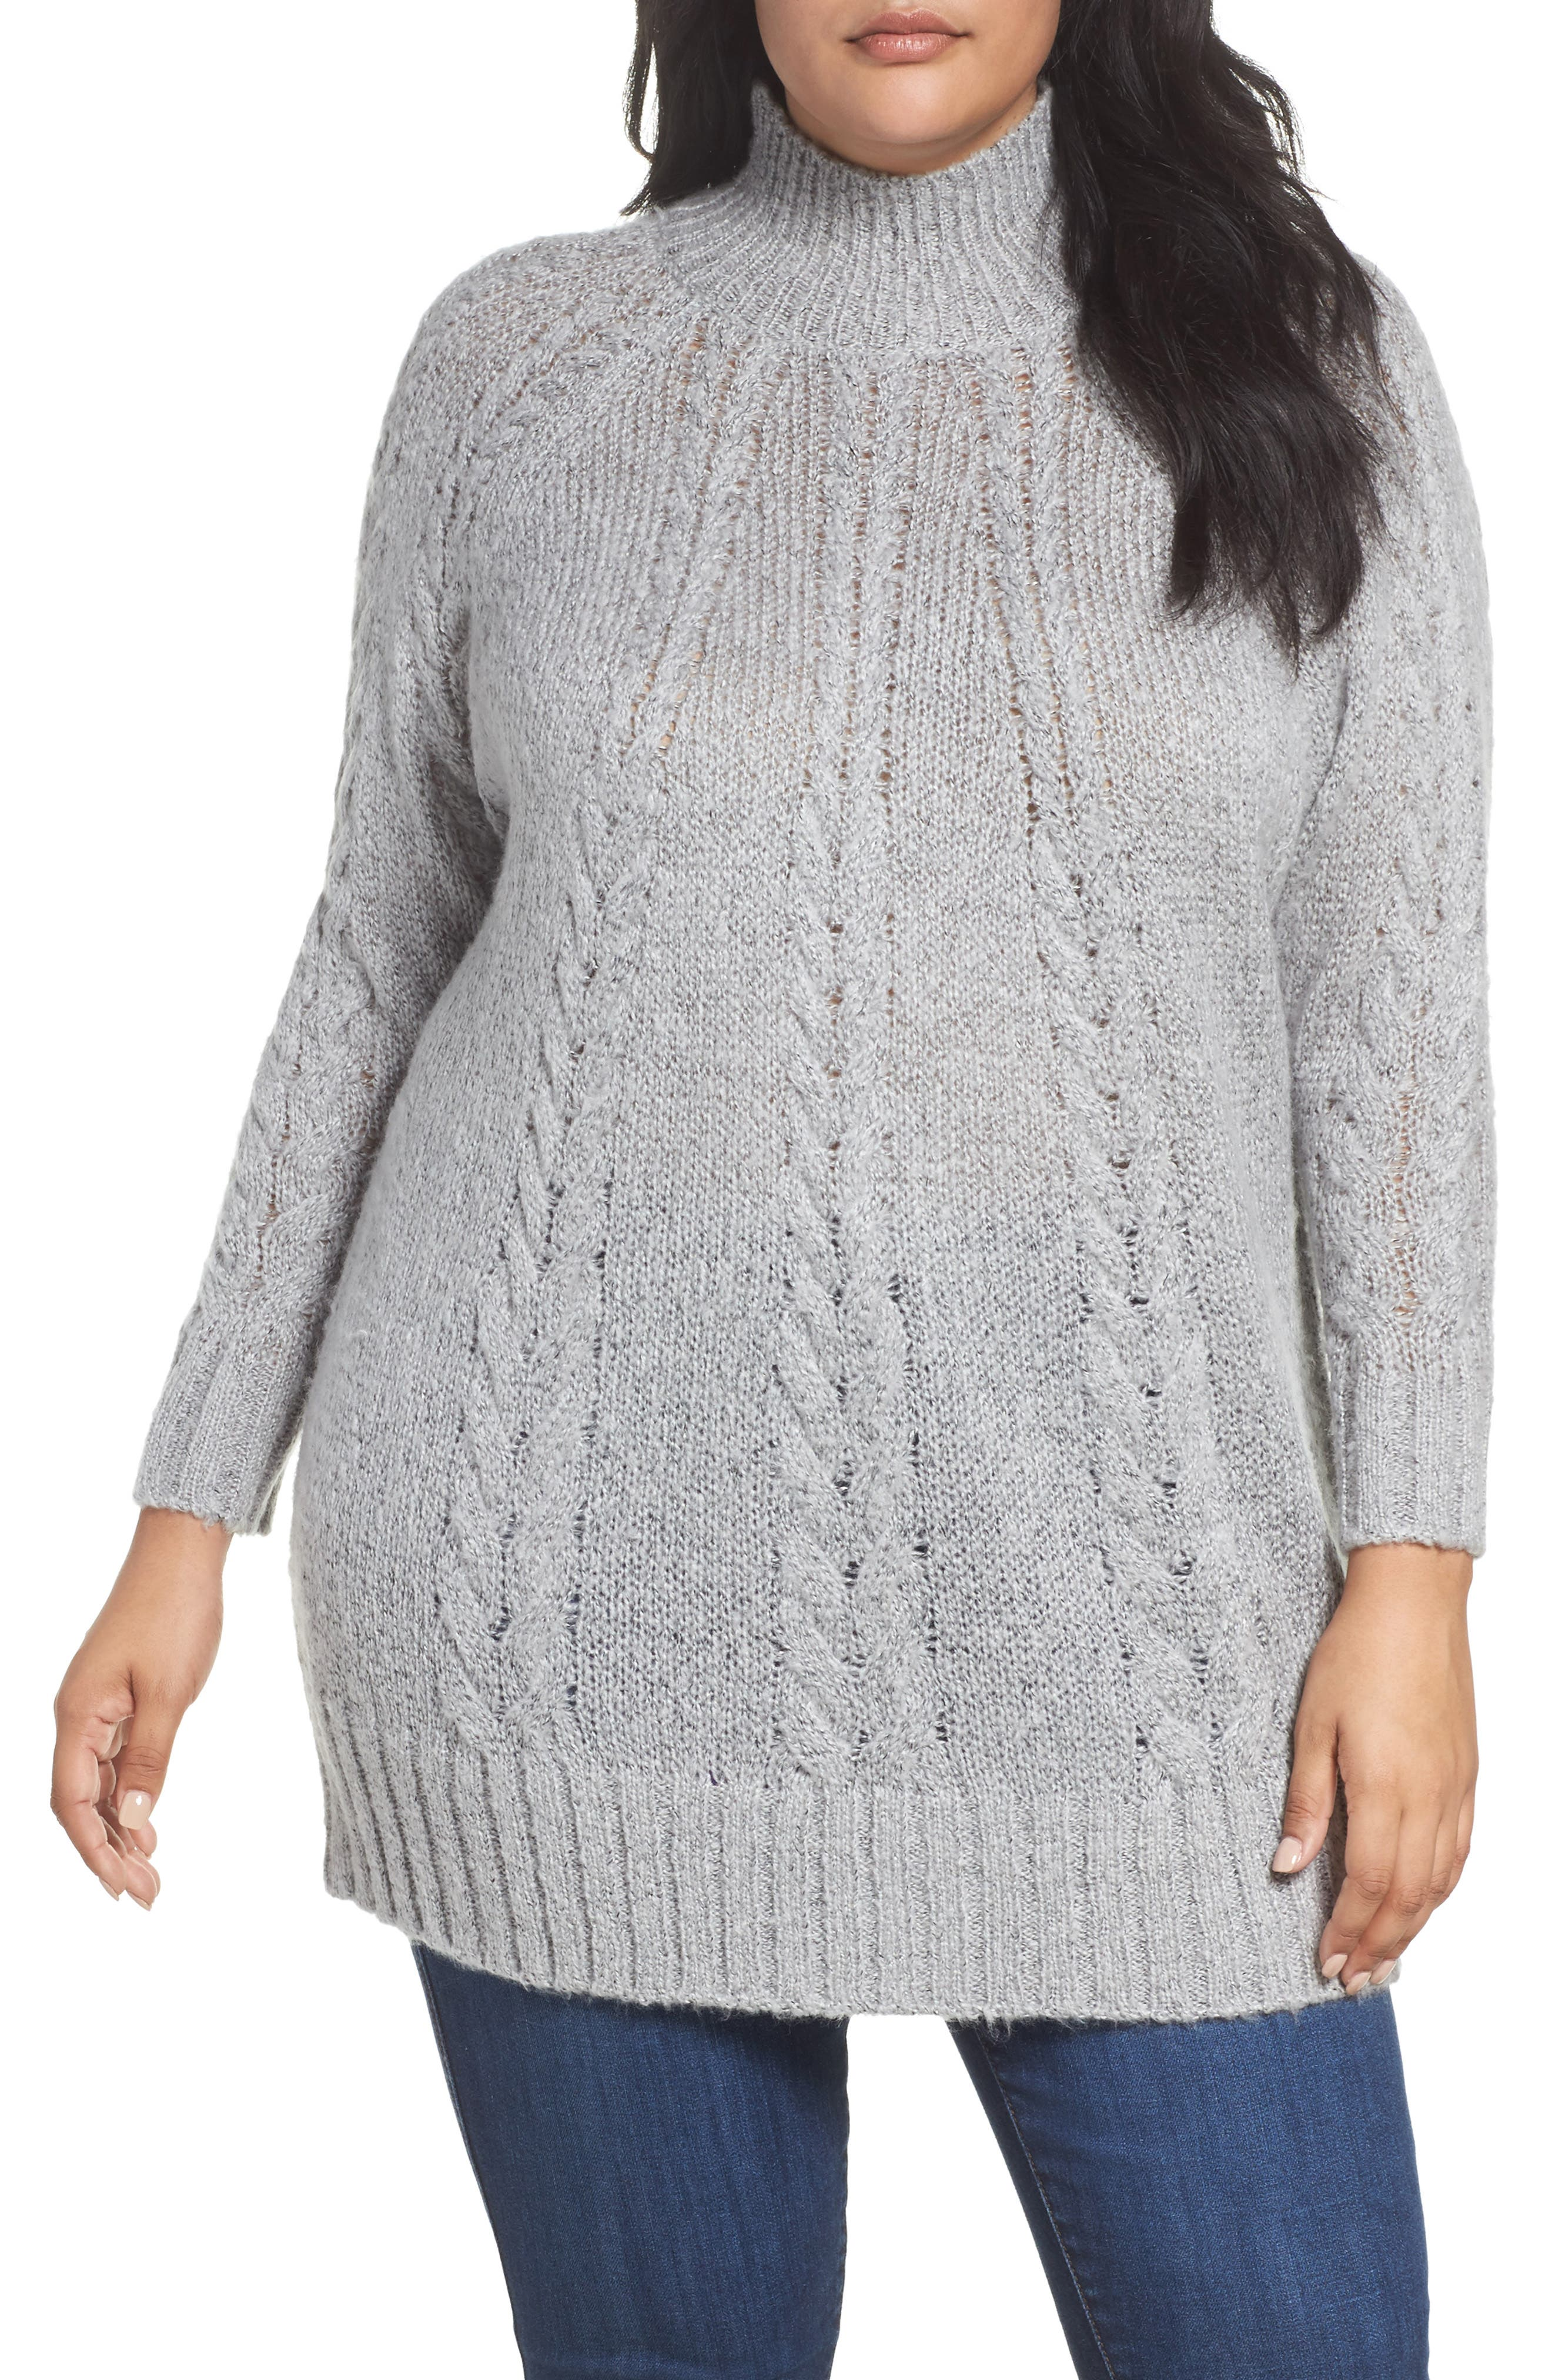 Cable Knit Tunic Sweater,                             Main thumbnail 1, color,                             030